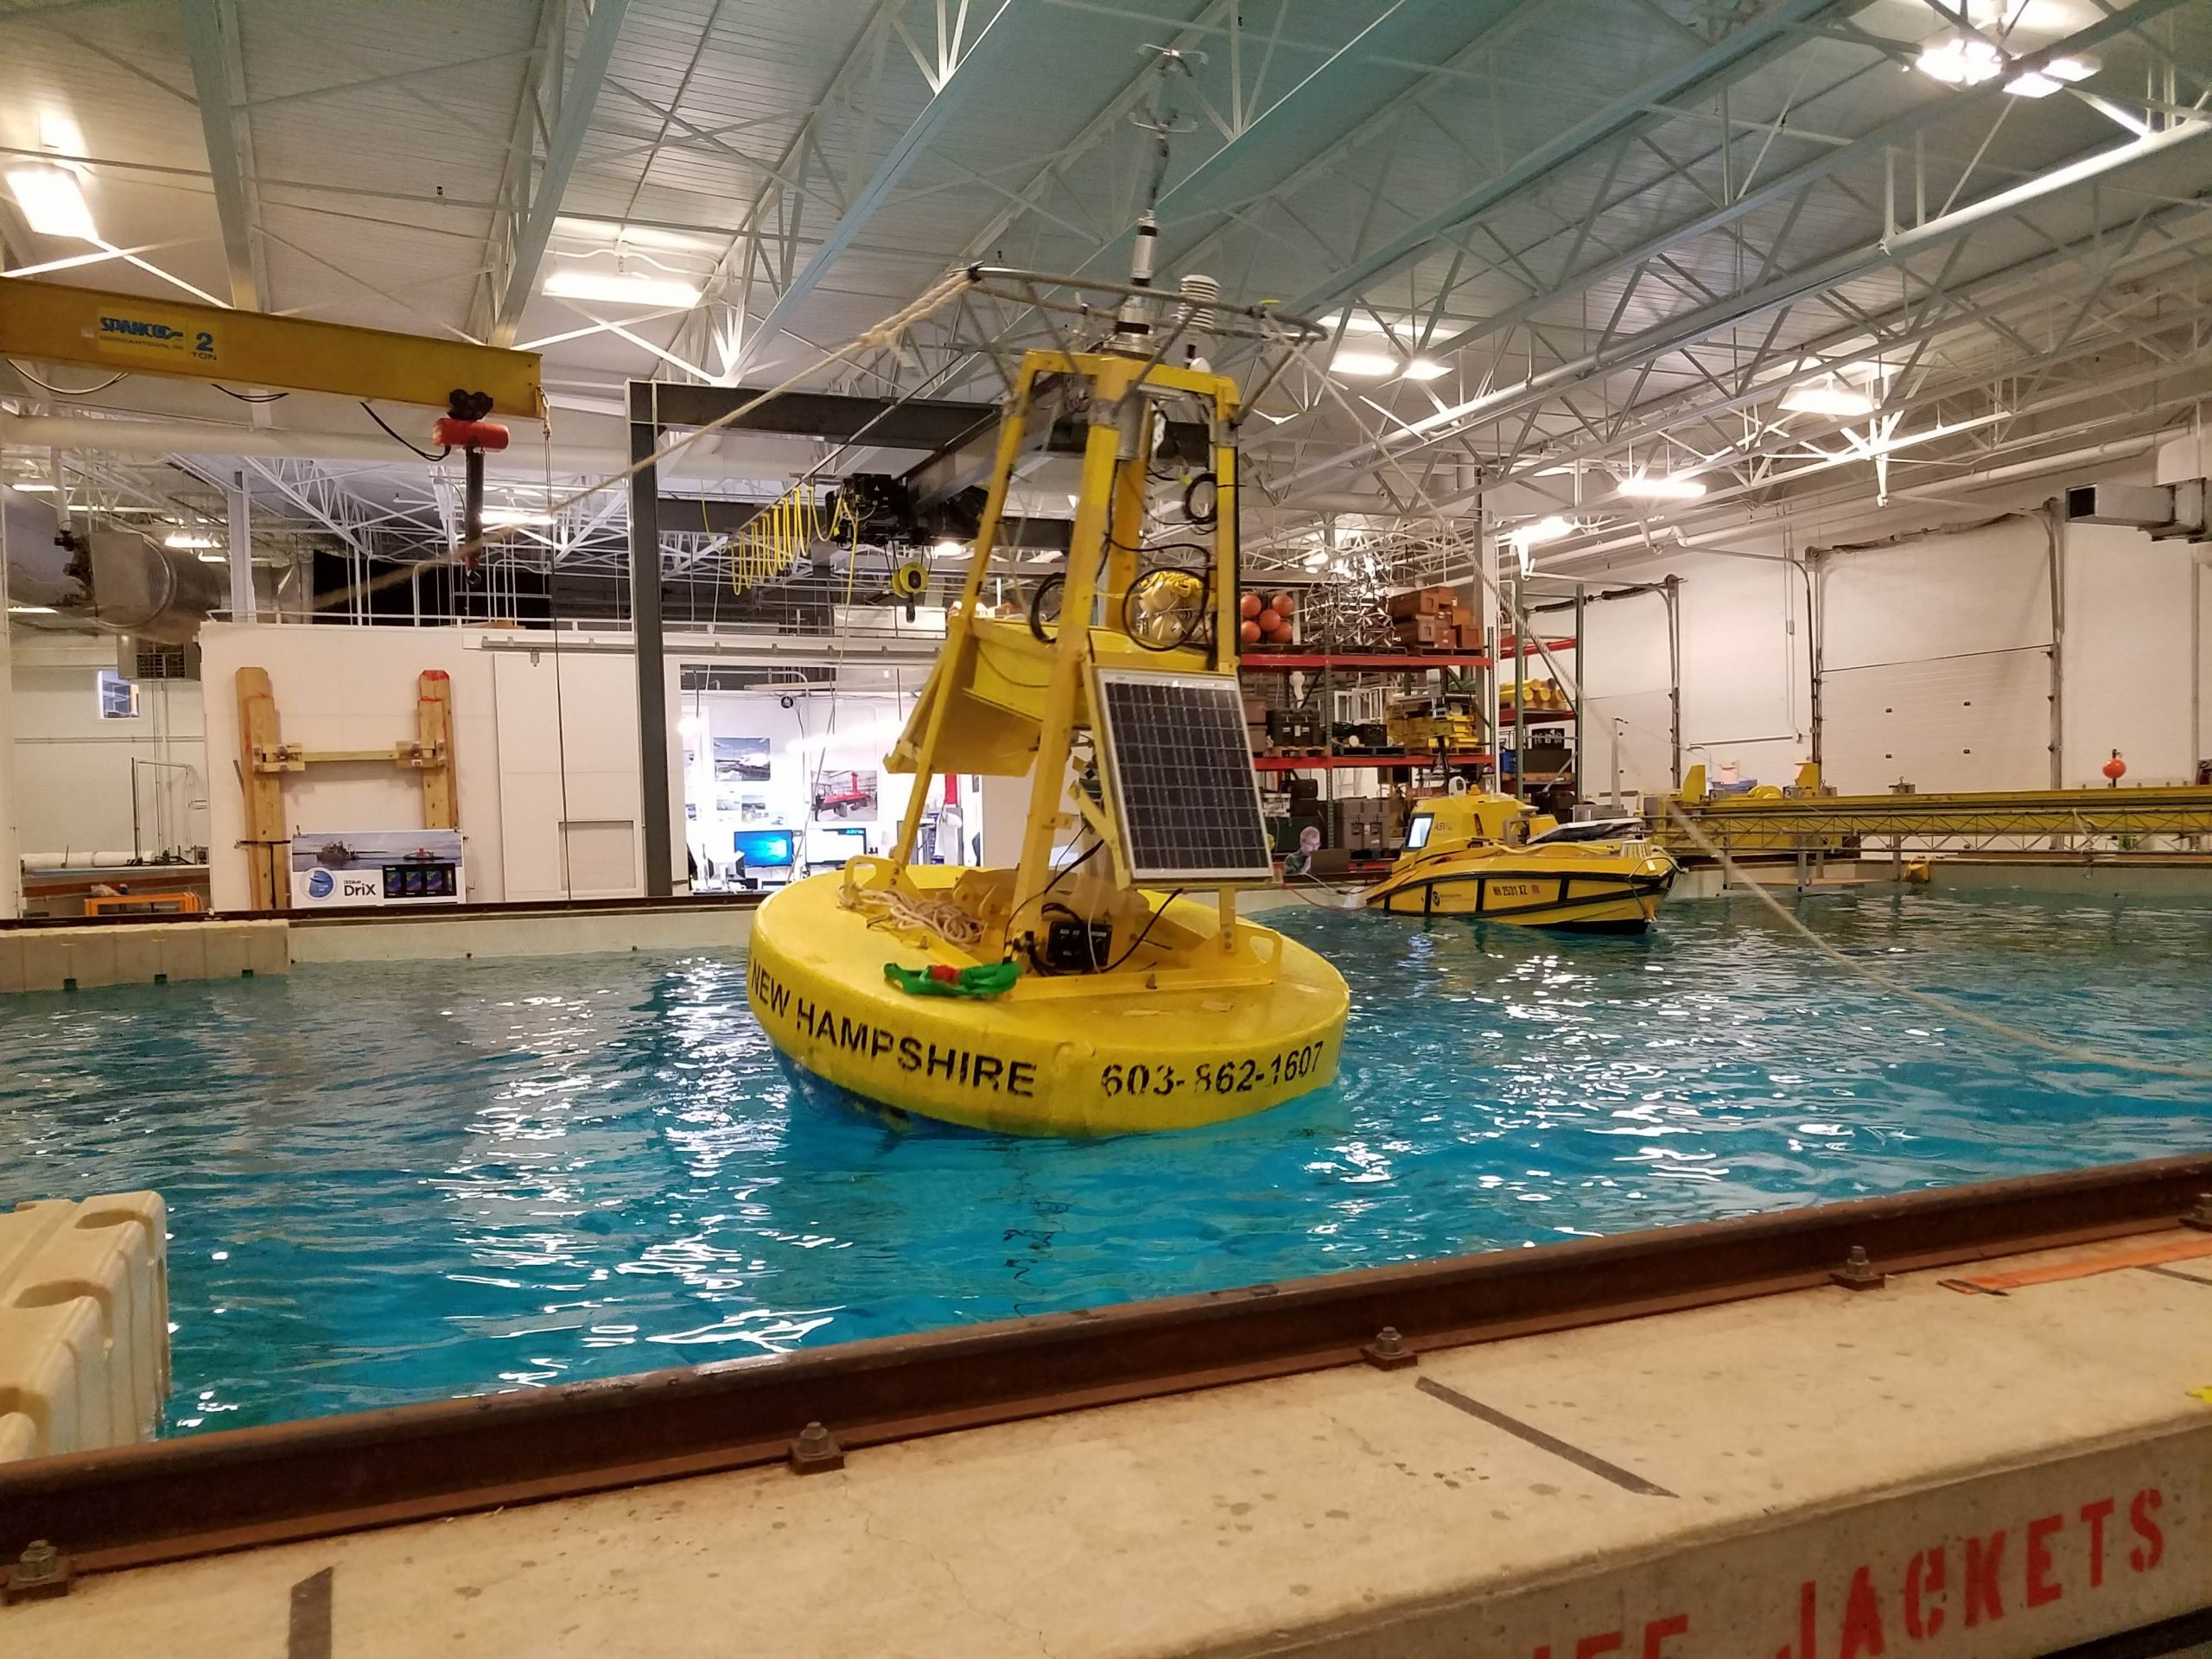 2020.03.11-UNH_Engineering_Tank-CO2_buoy